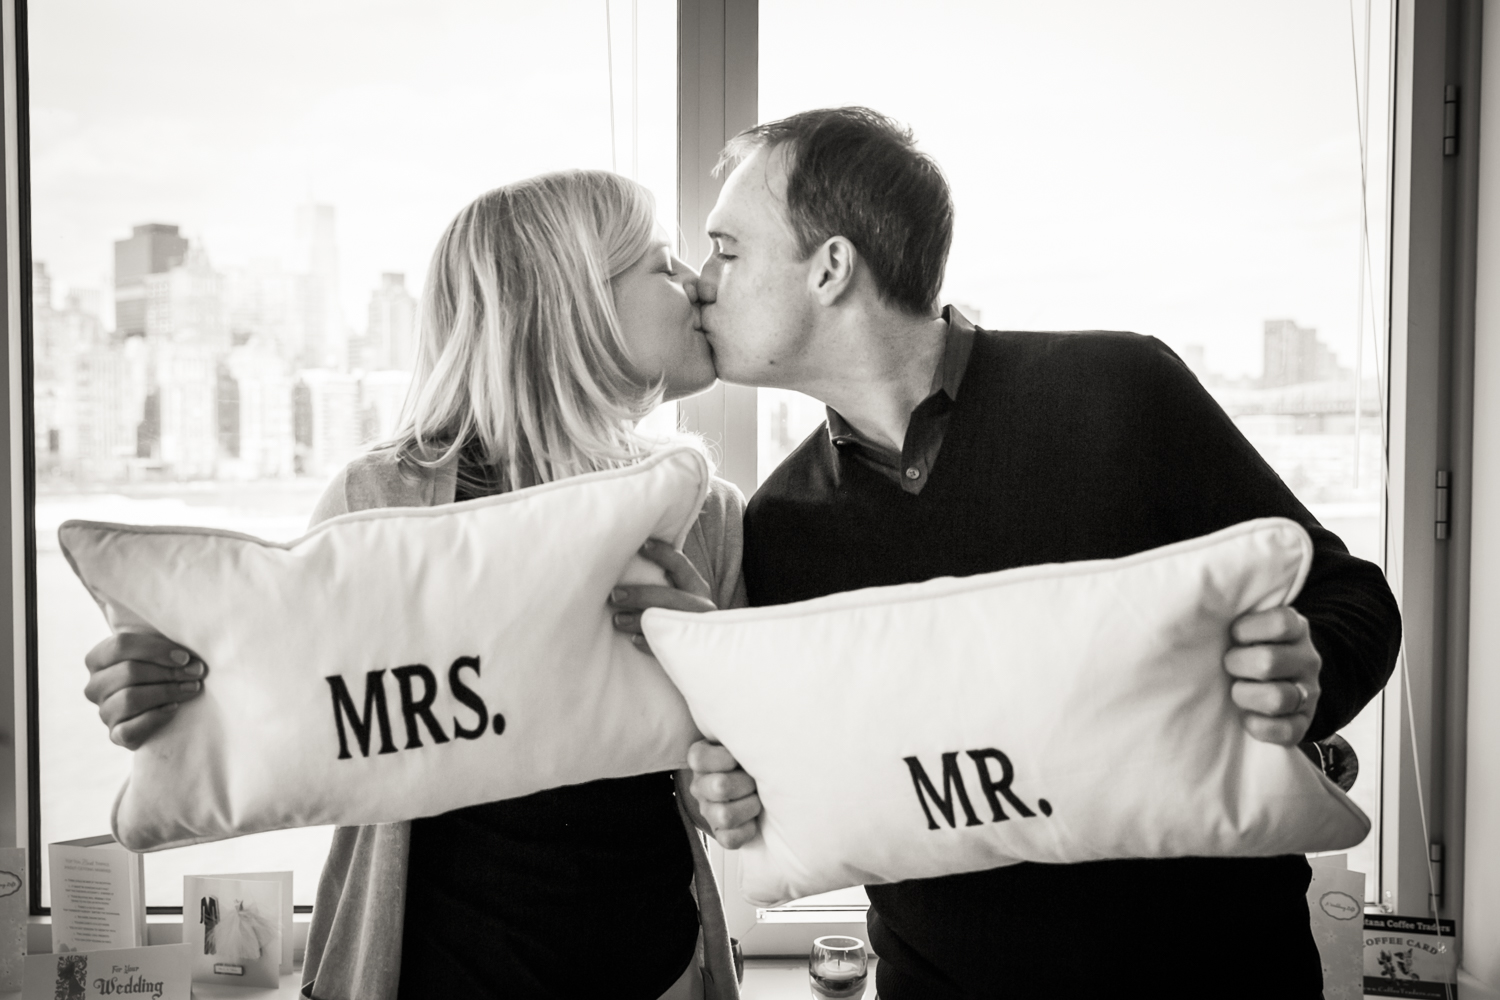 Black and white photo of bride and groom kissing over Mr. and Mrs. pillows